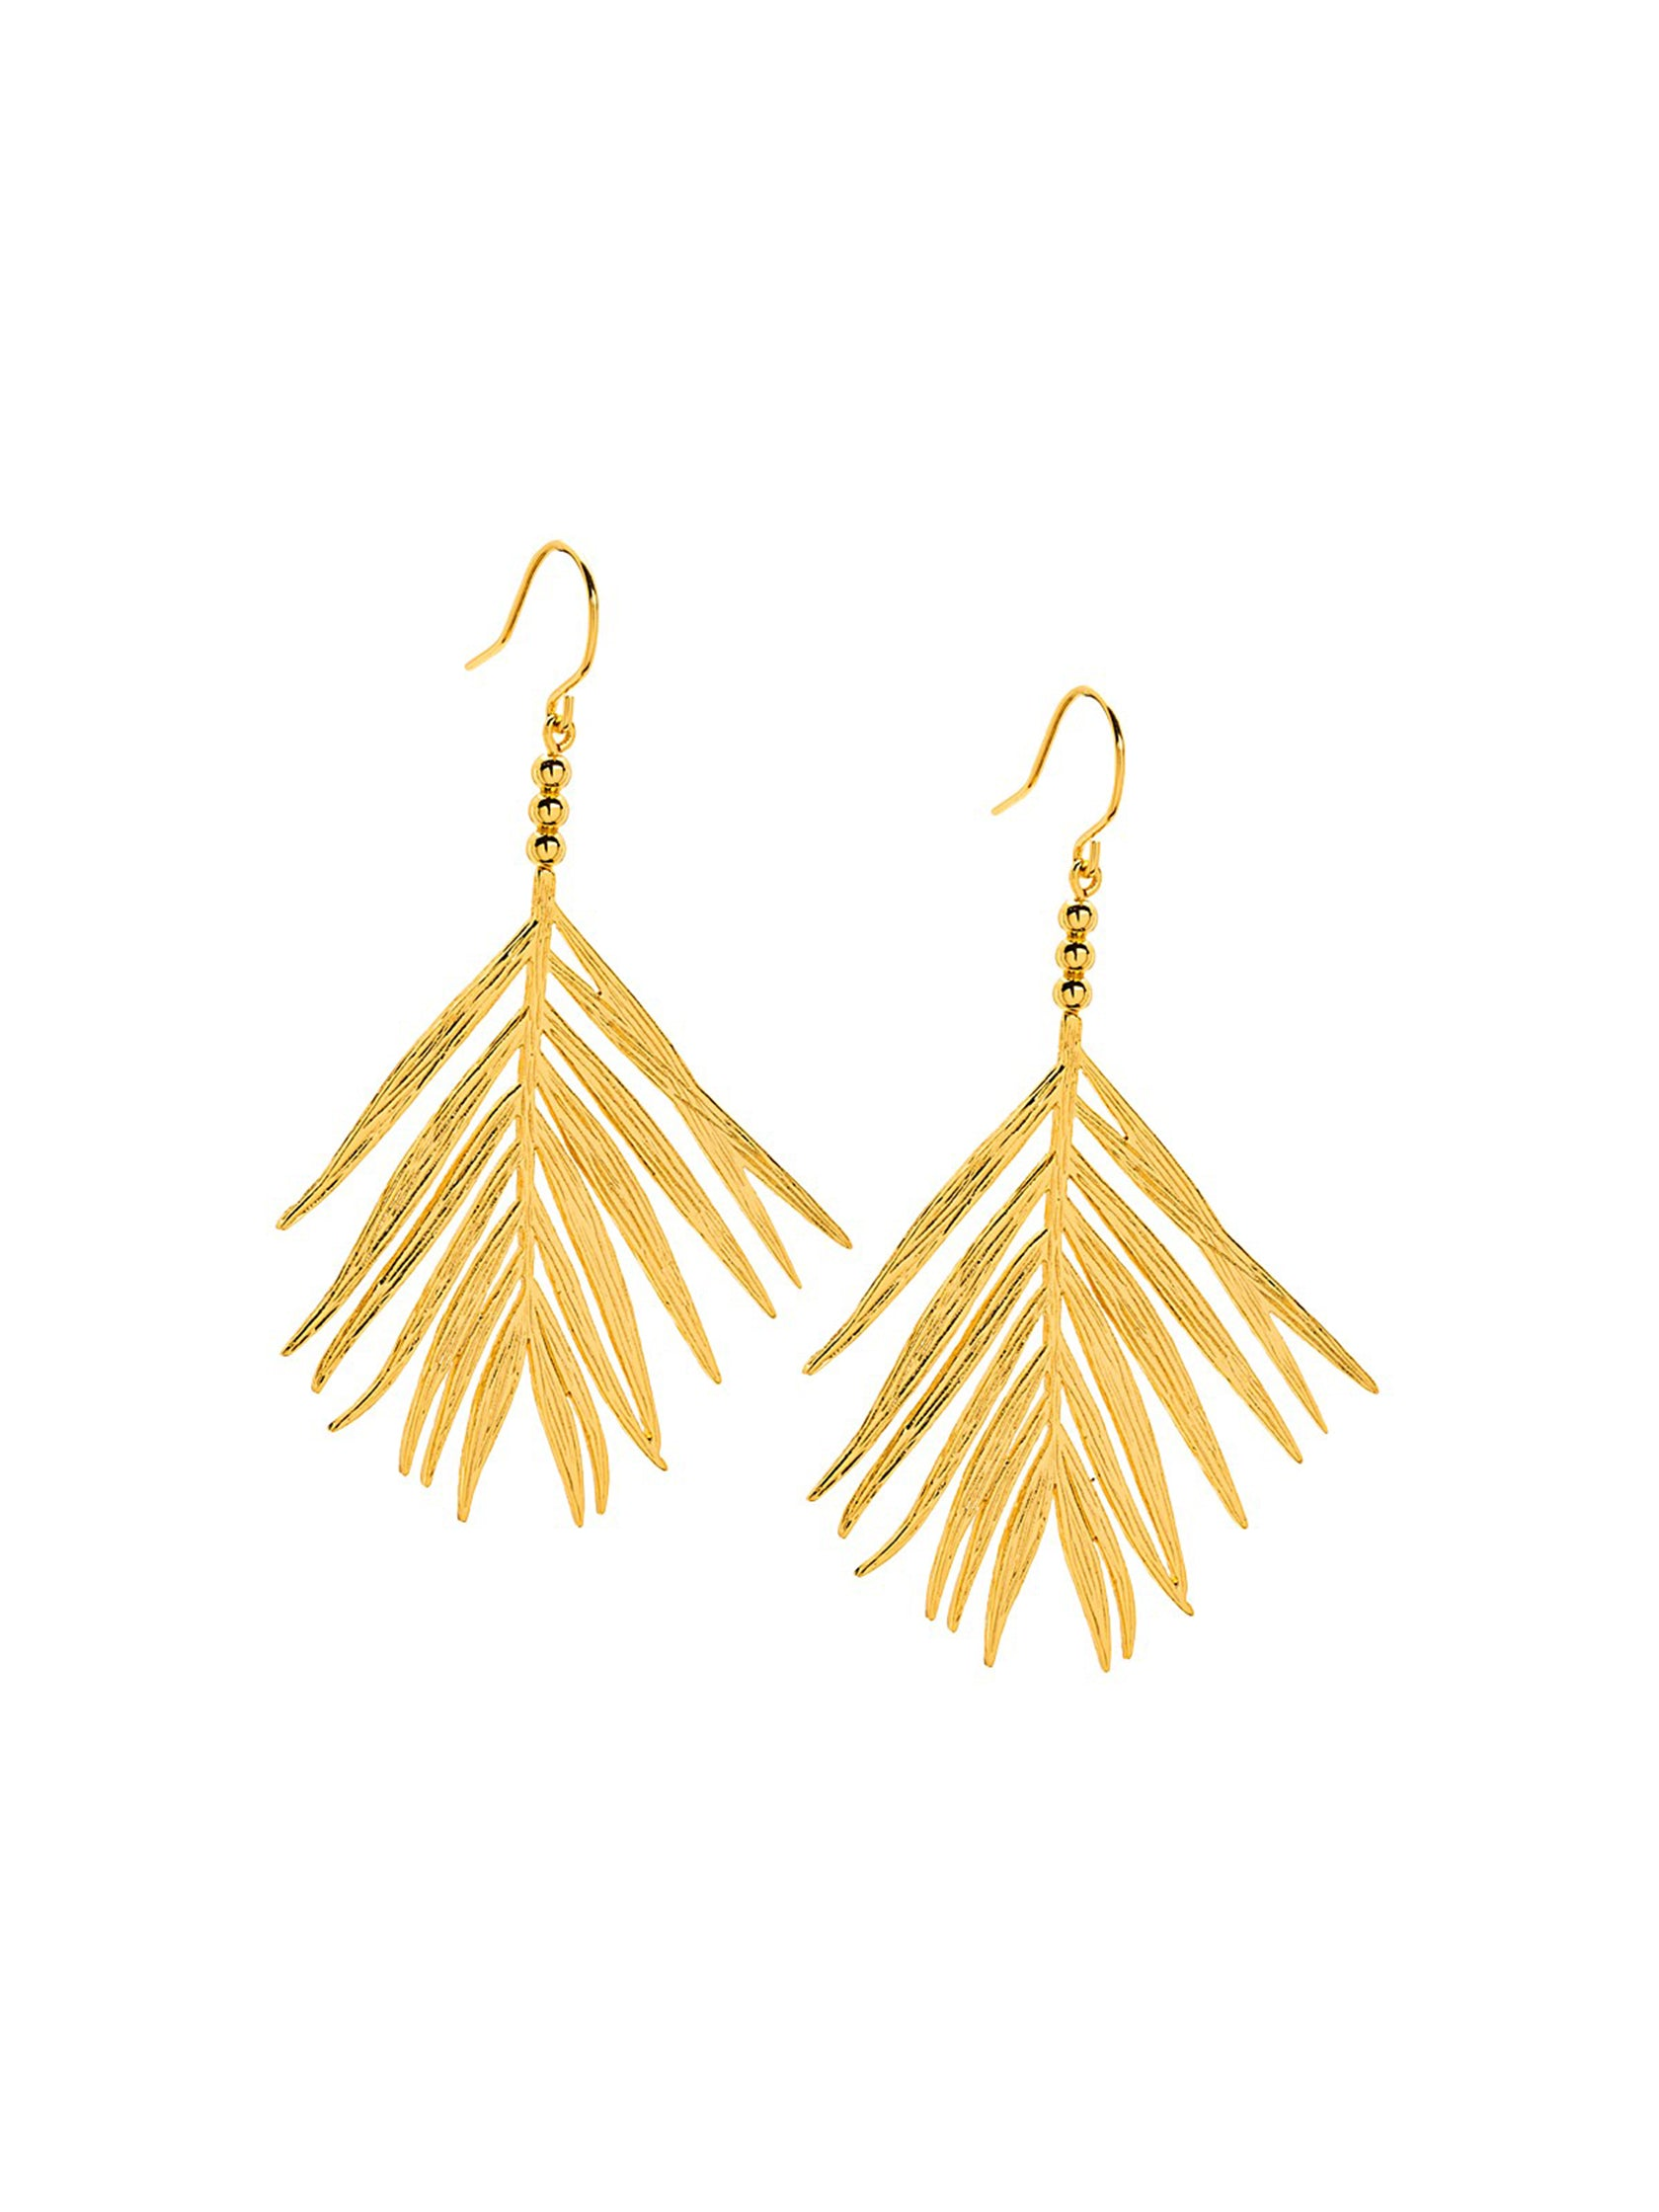 Women outfit in a earrings rental from Gorjana called Palm Drop Earrings